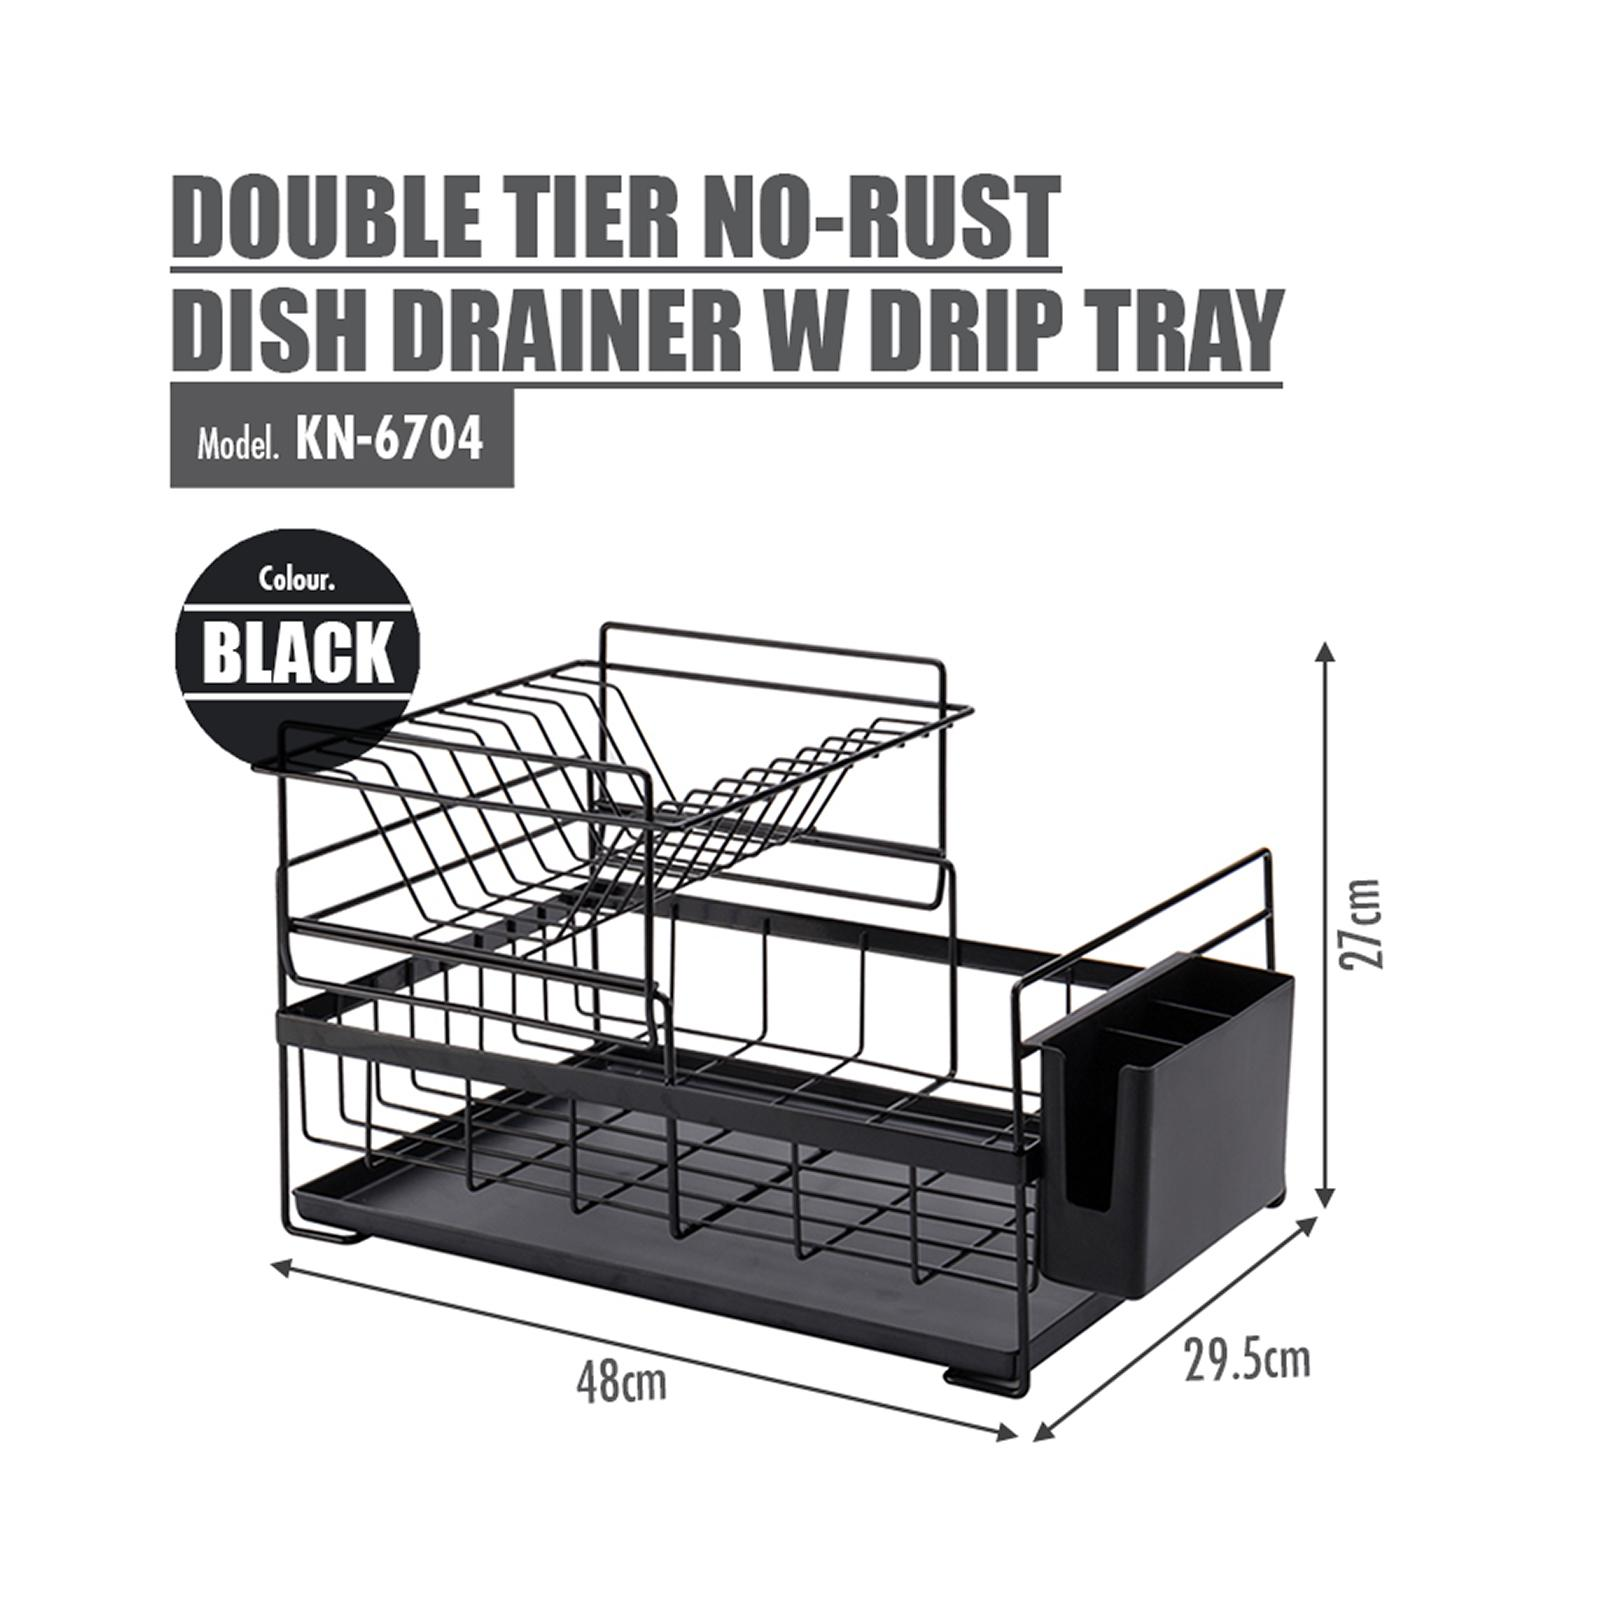 HOUZE Double Tier No-Rust Dish Drainer With Drip Tray - Black - KN-6704-BLACK